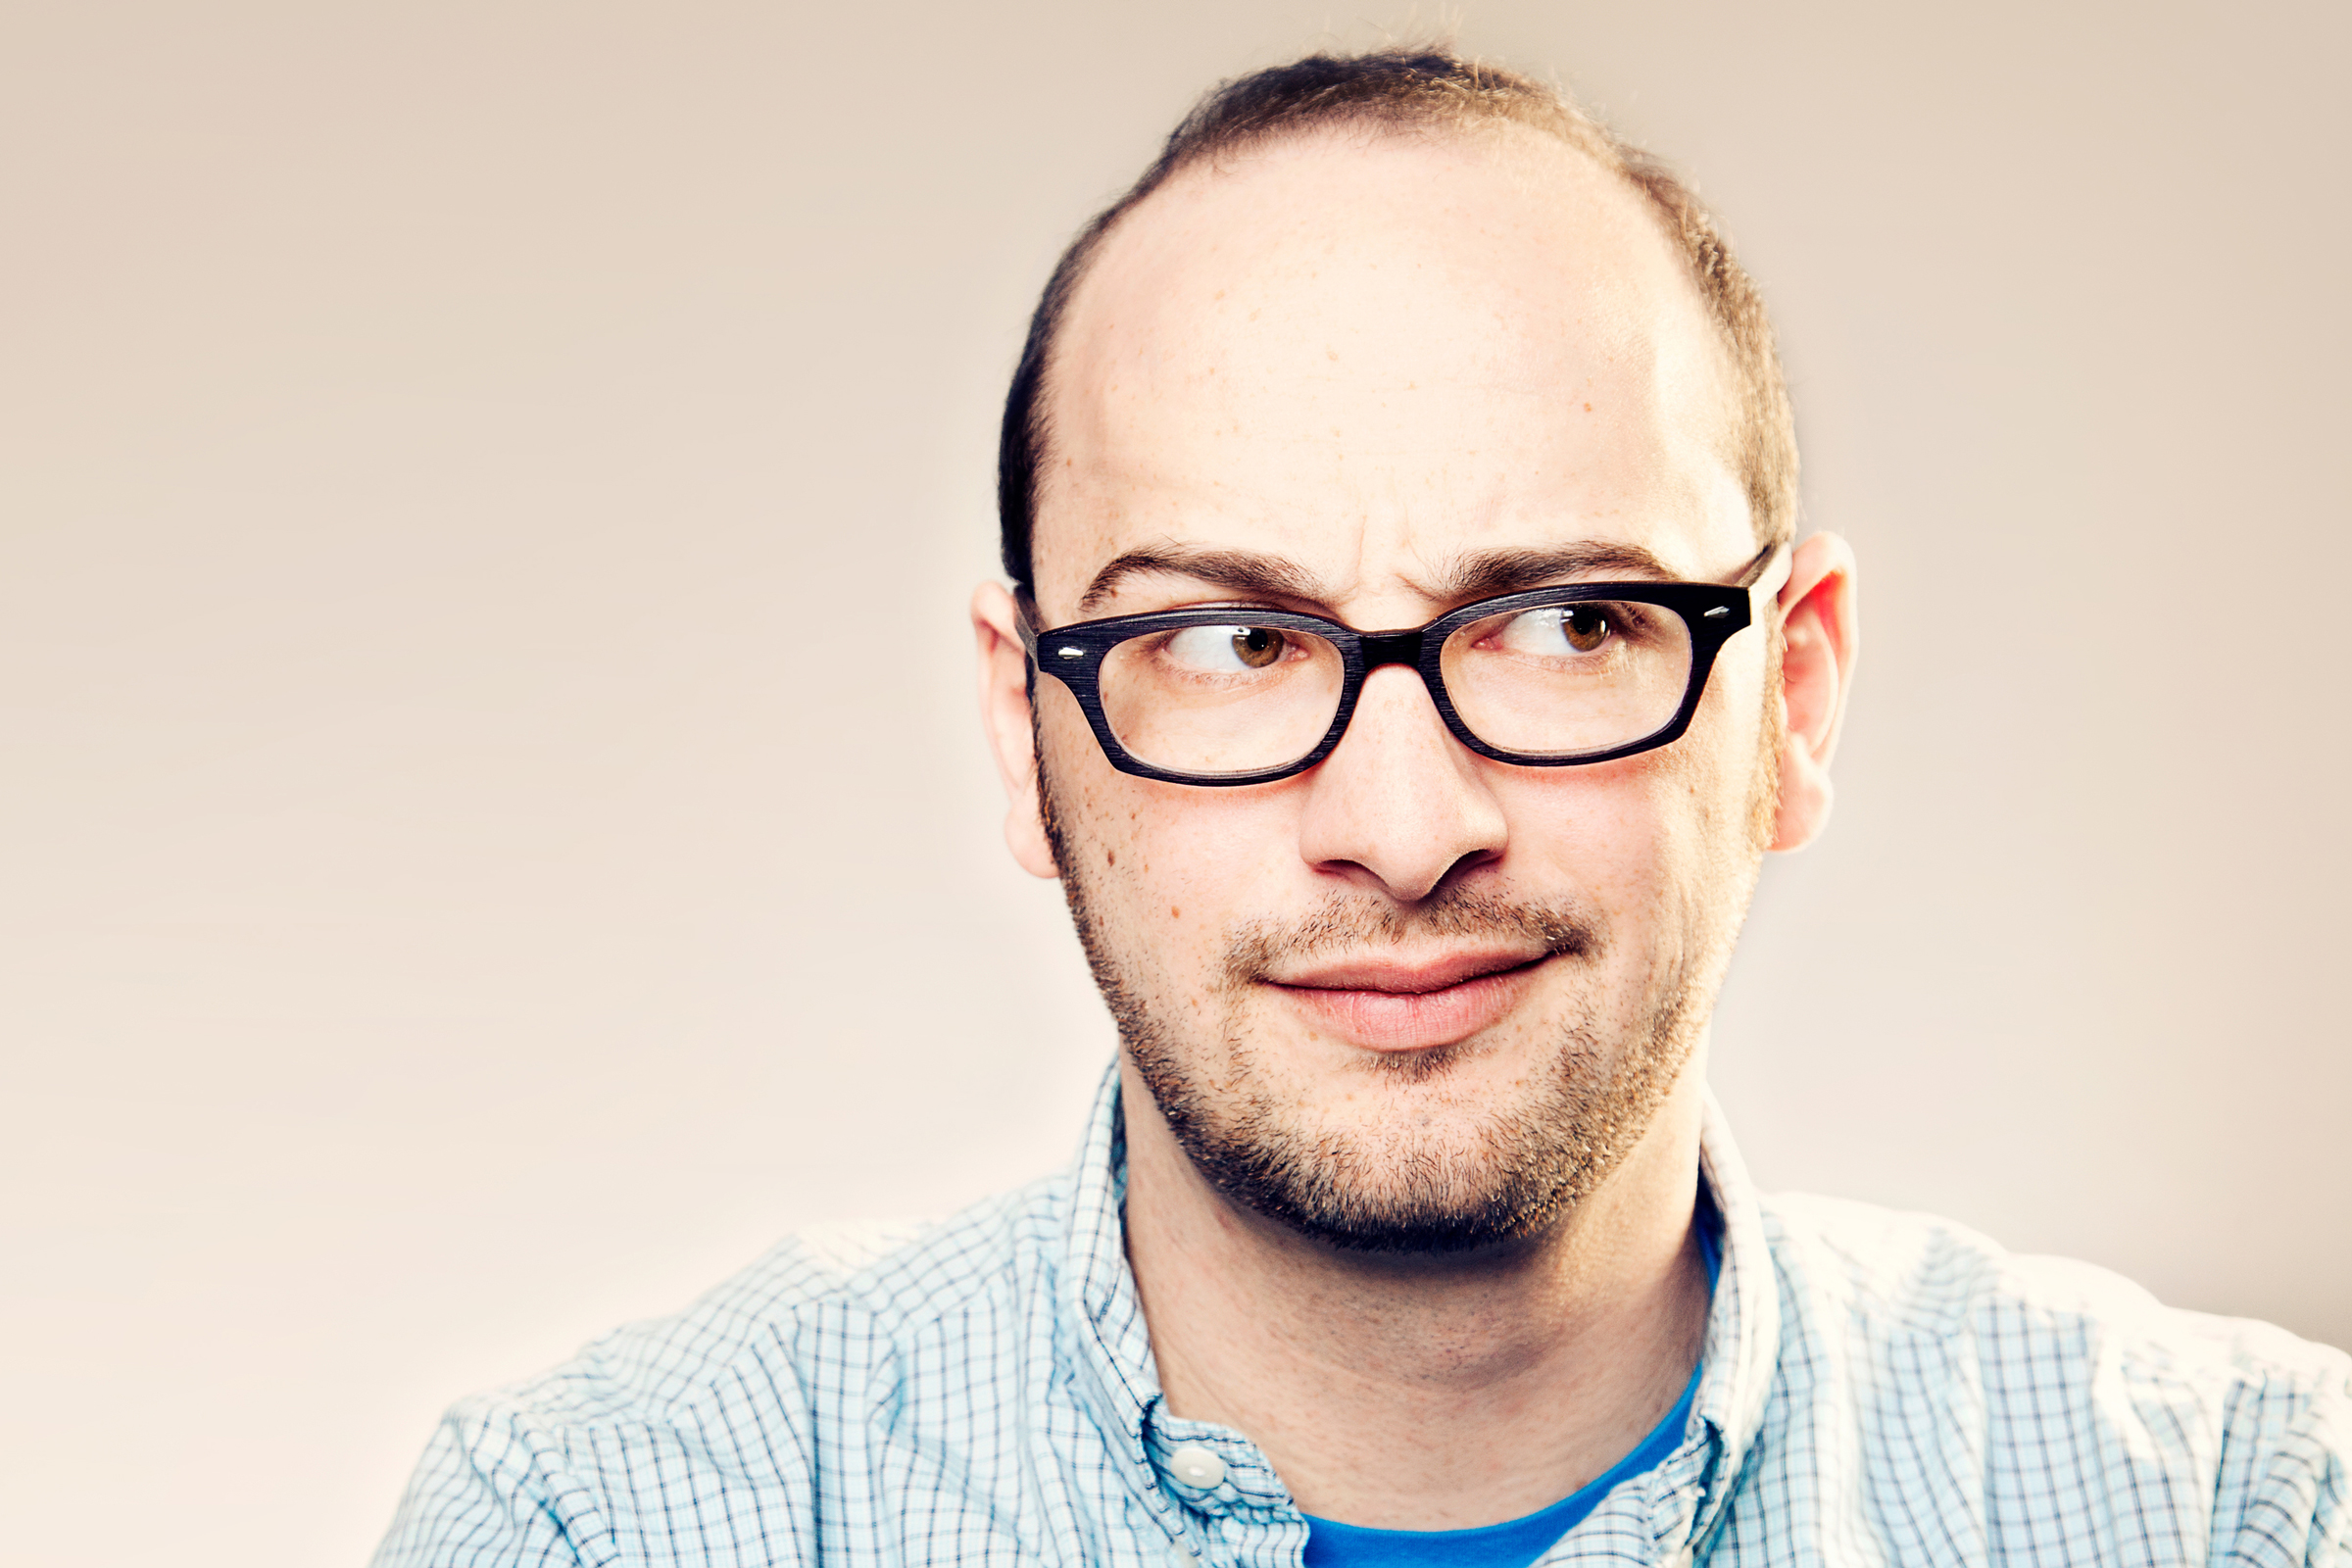 Comedian Josh Gondelman on Molly, the Roots and Giving It His 'Nice Try'